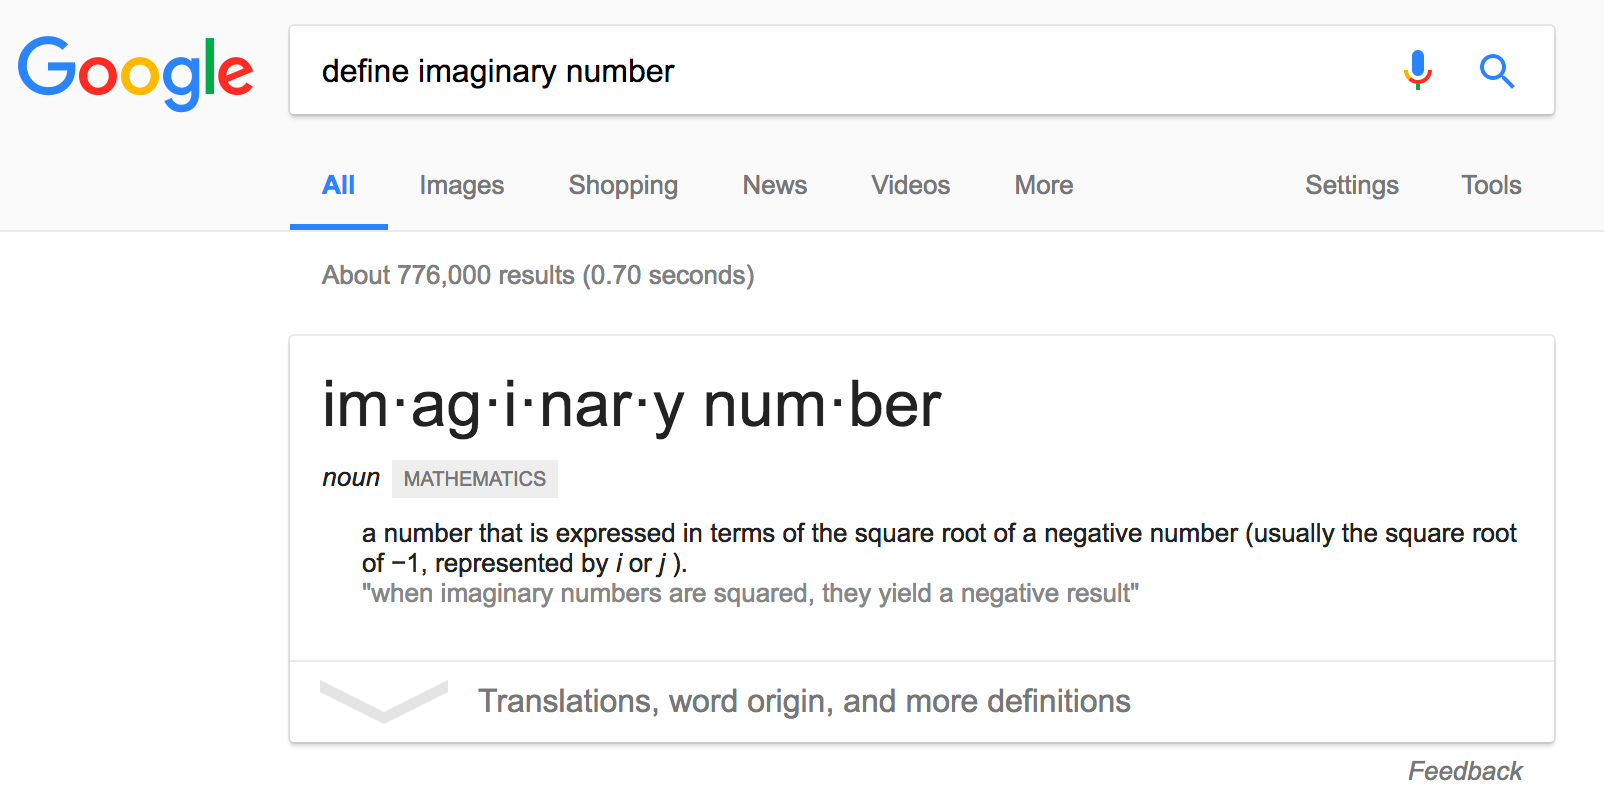 define imaginary number